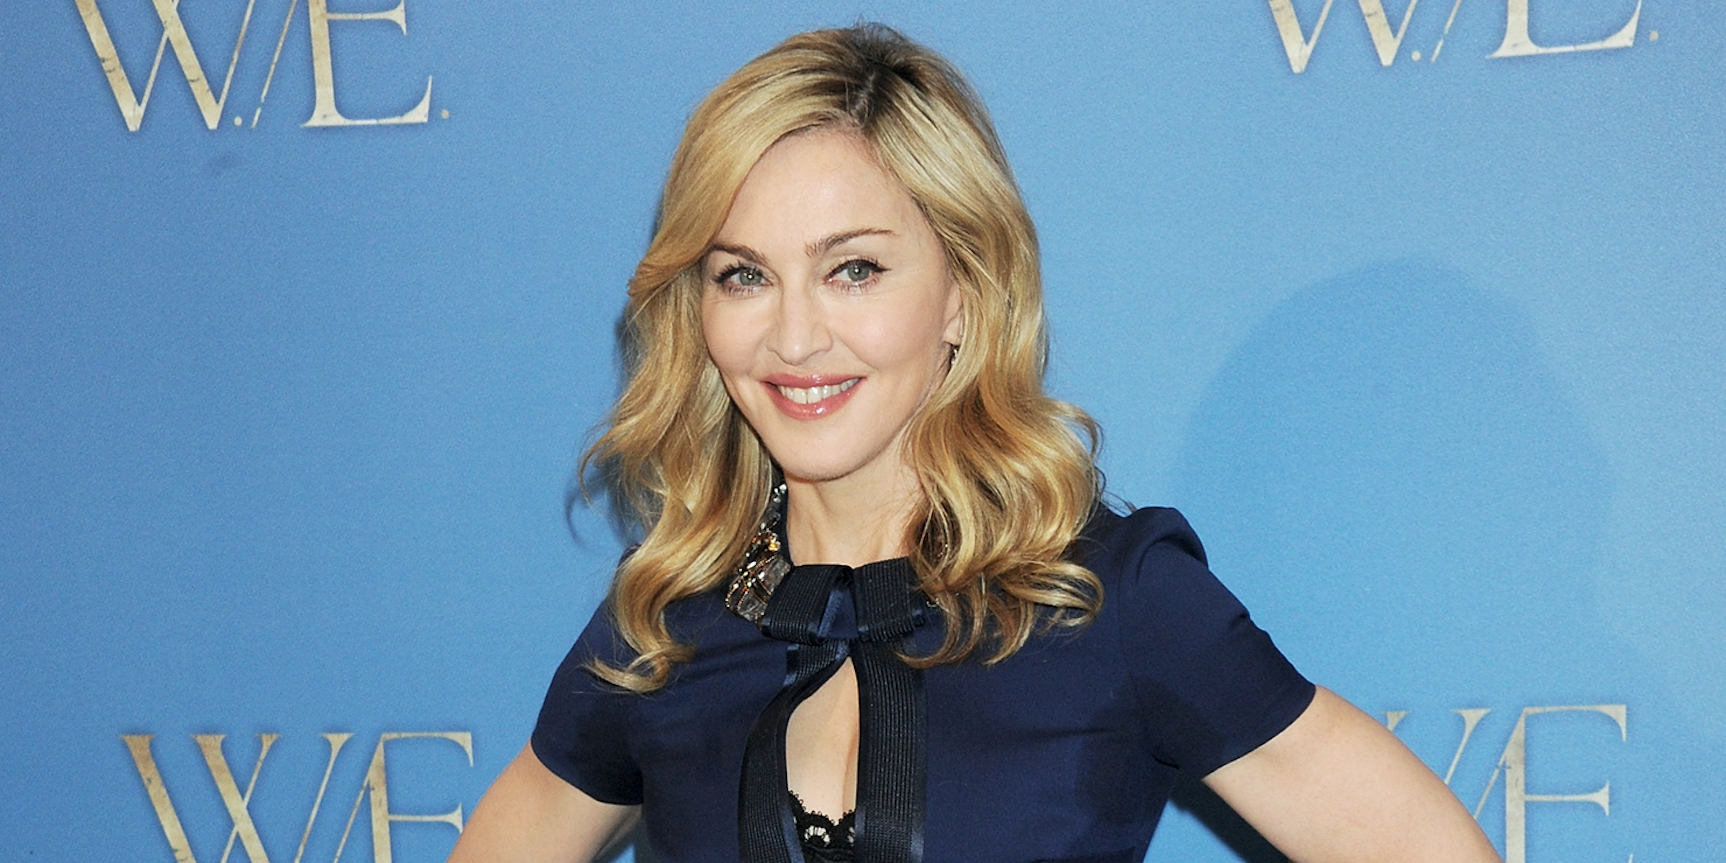 Madonna confirms new album Madame X and teases new music in stunning teaser